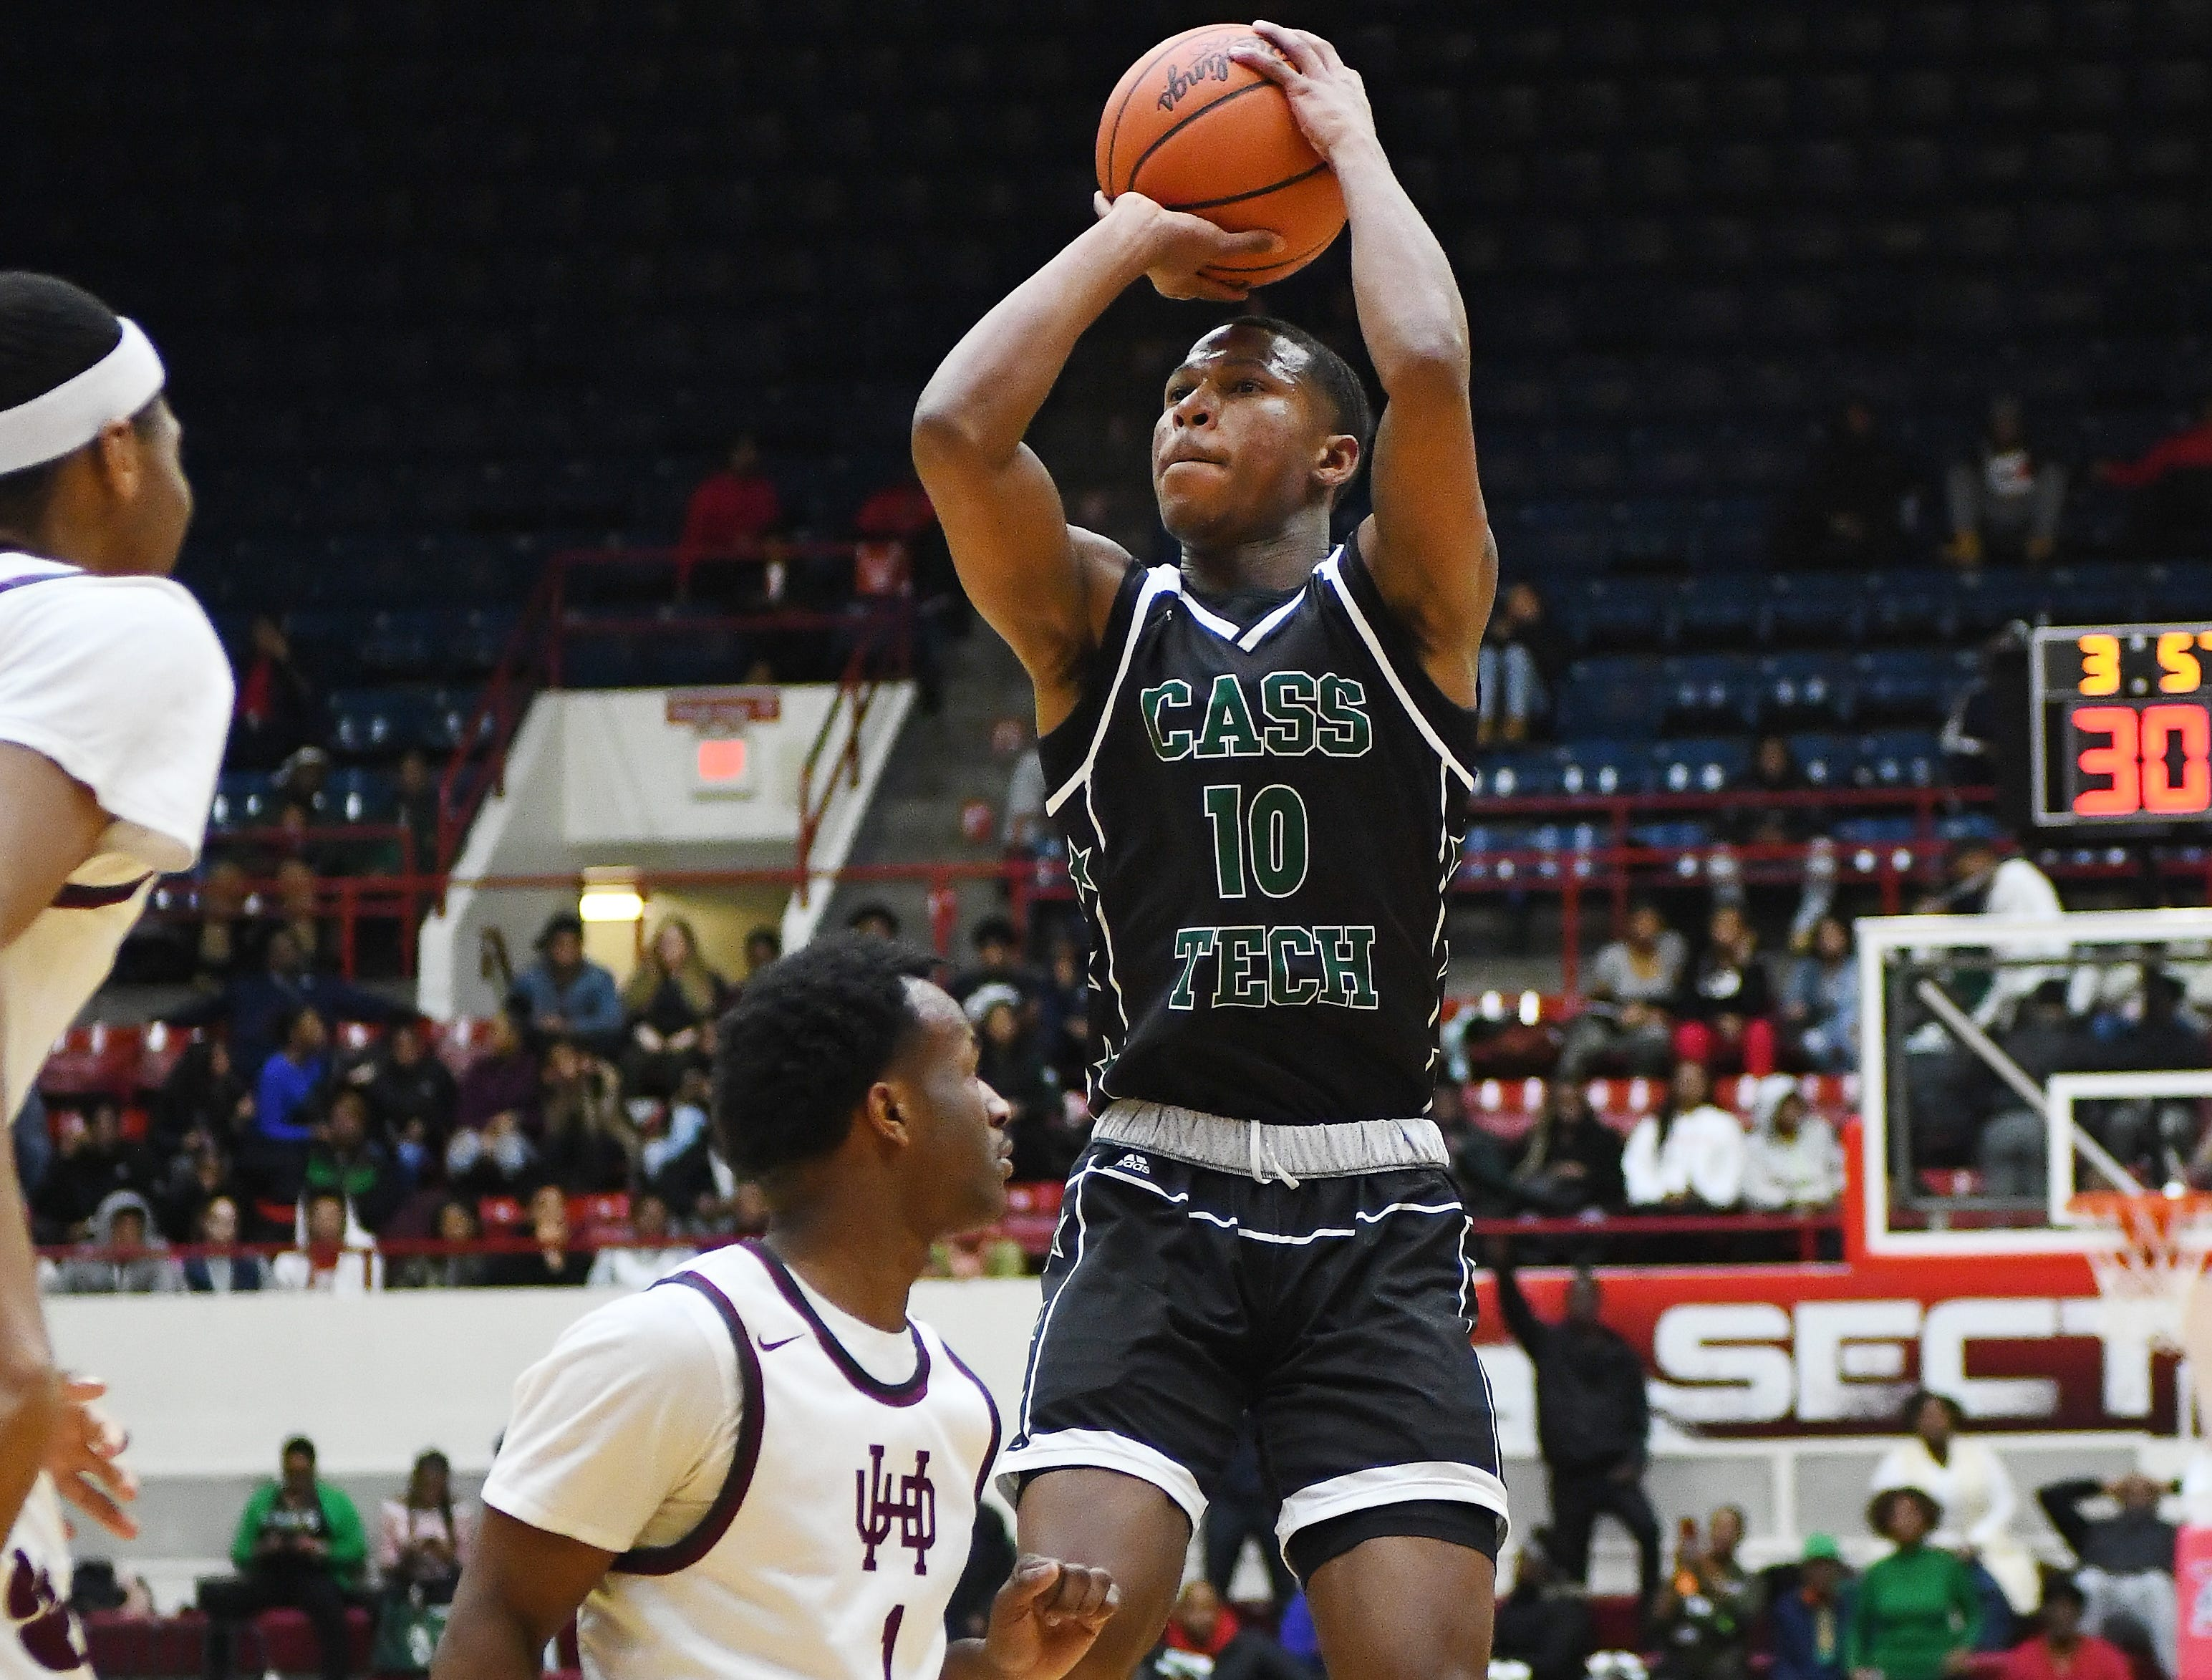 Cass Tech's Michael Washington-Hill puts up a long shot in the first half of the championship game.